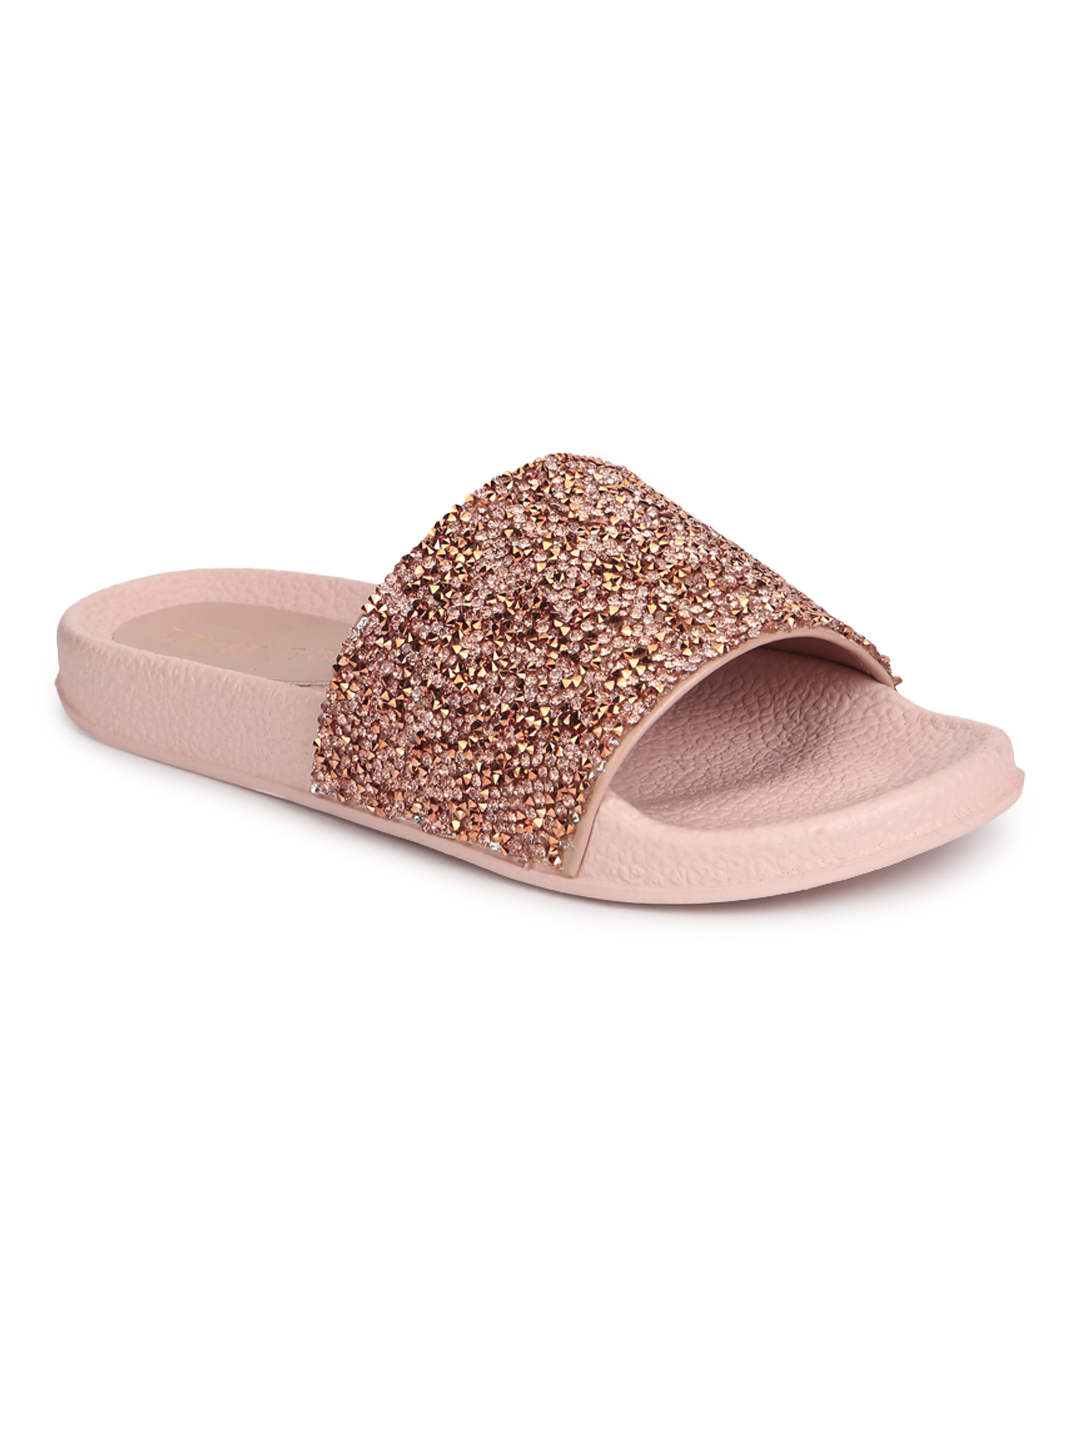 Truffle Collection | Truffle Collection Gold PU Glitter Slides